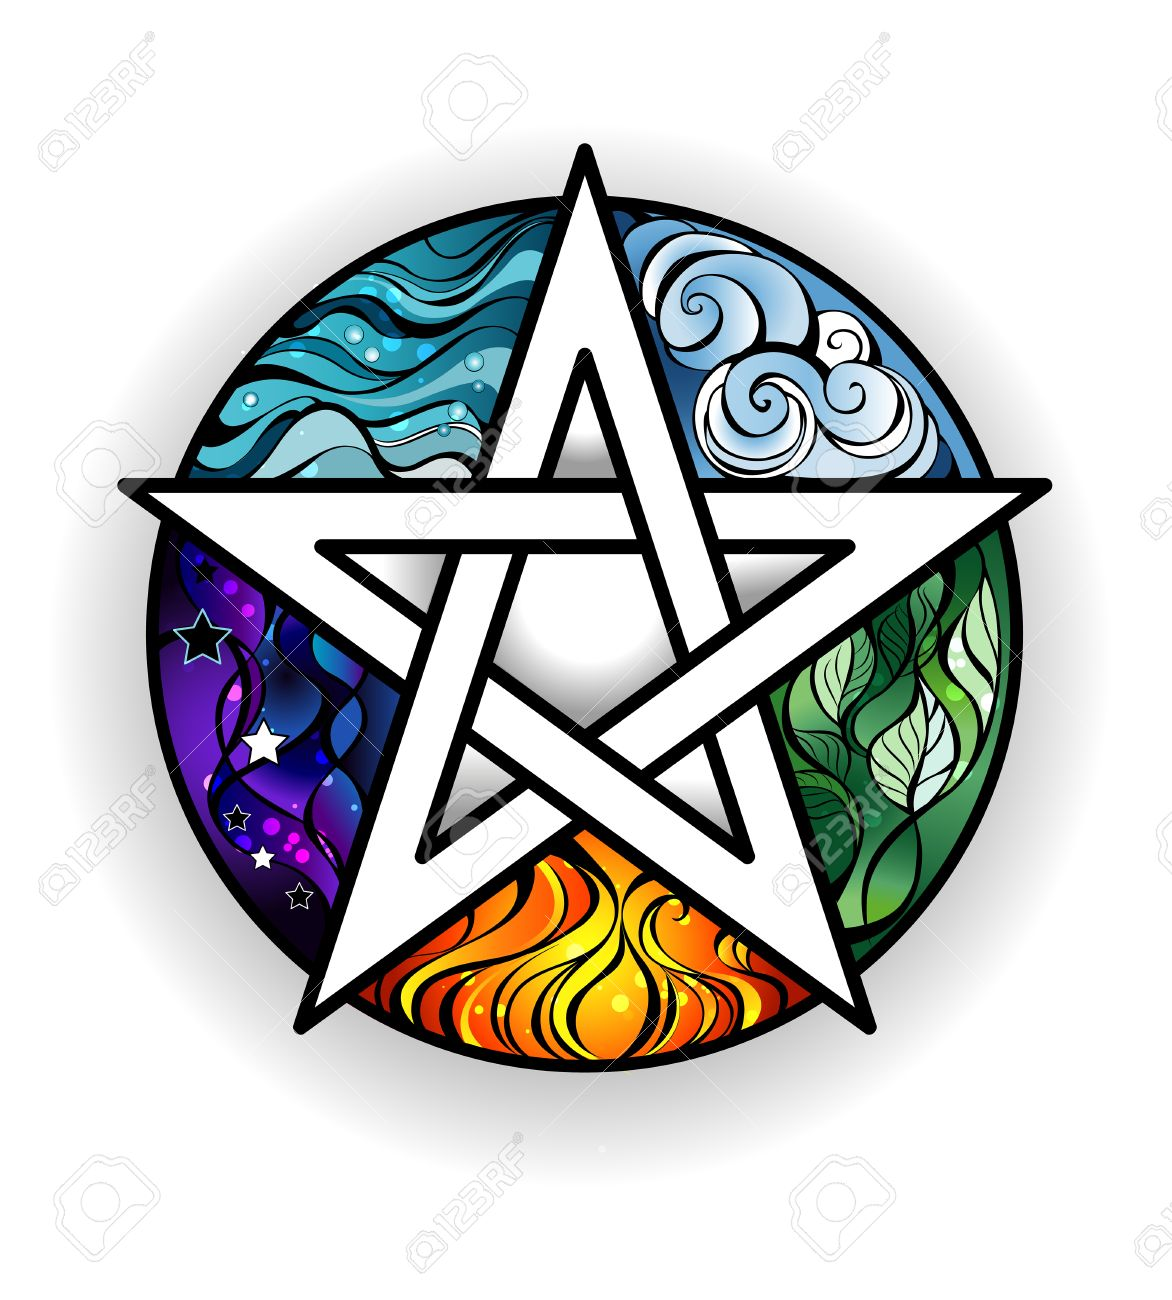 Wicca Stock Photos Royalty Free Wicca Images